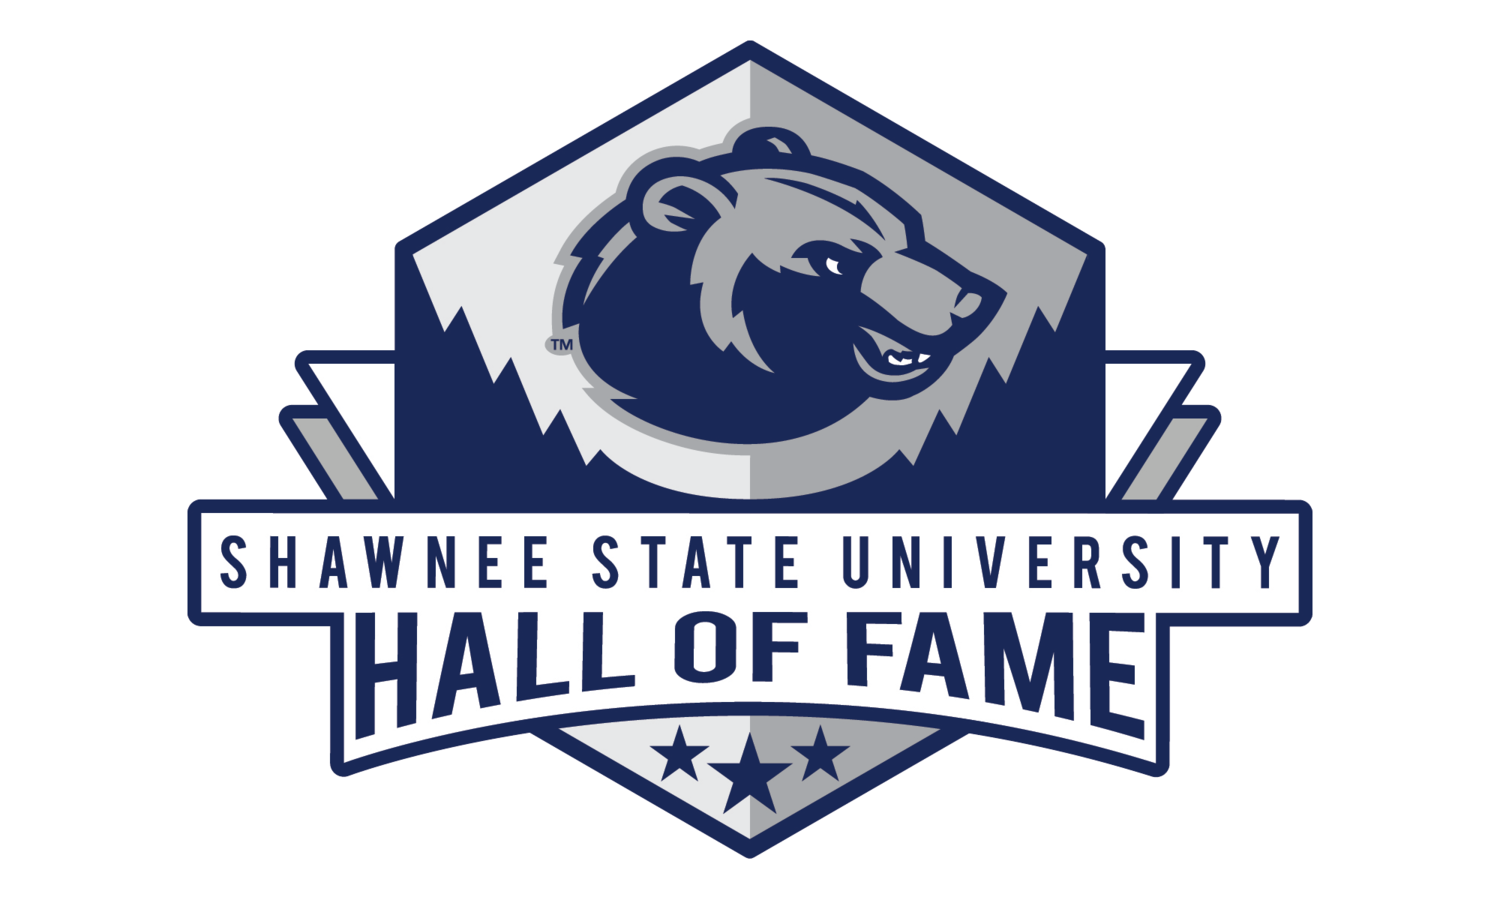 Shawnee State University Athletics Hall of Fame Banquet